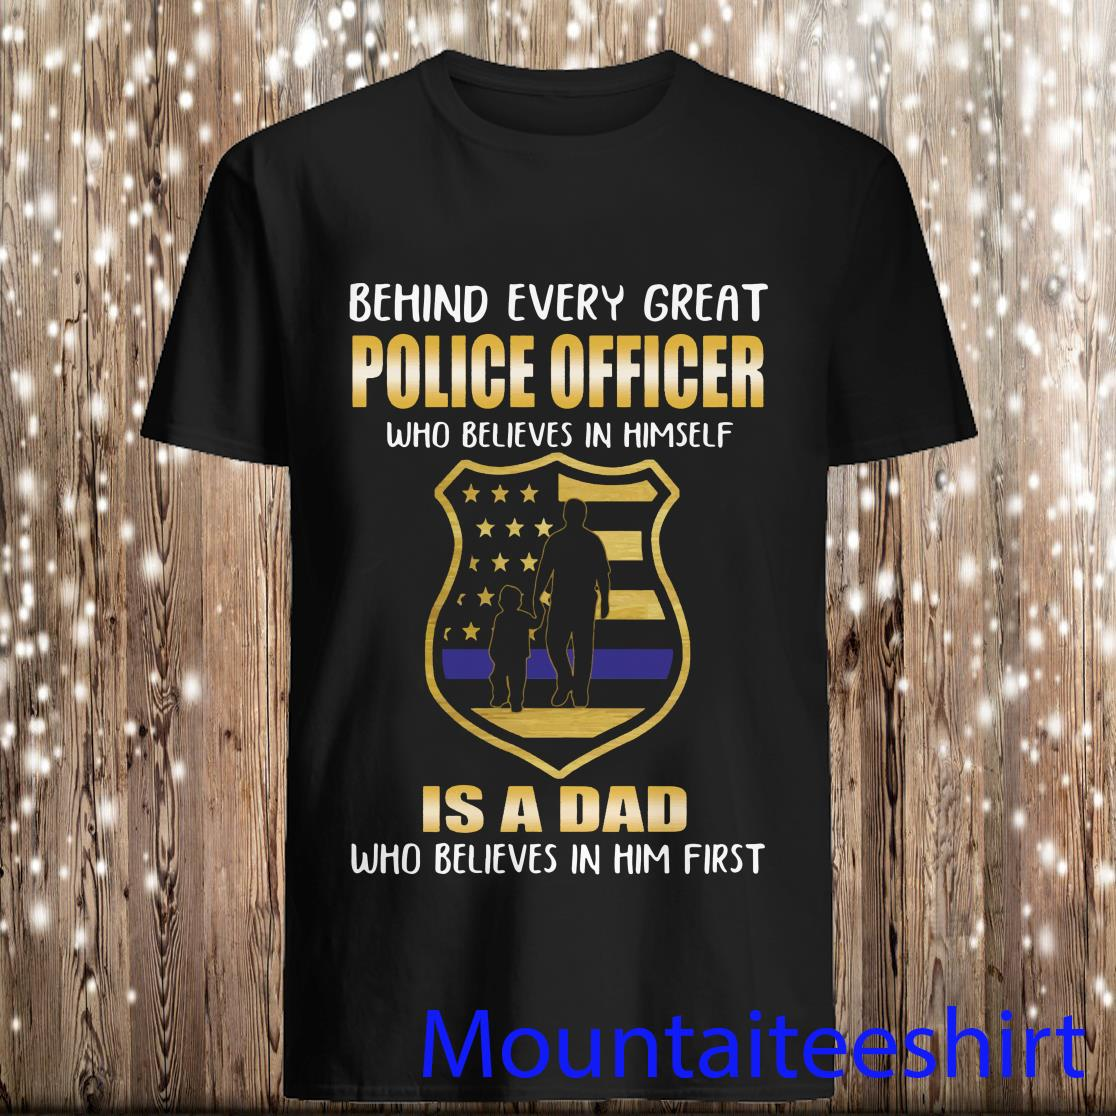 Great Police Officer Who Believes in Herself is A Dad Shirt